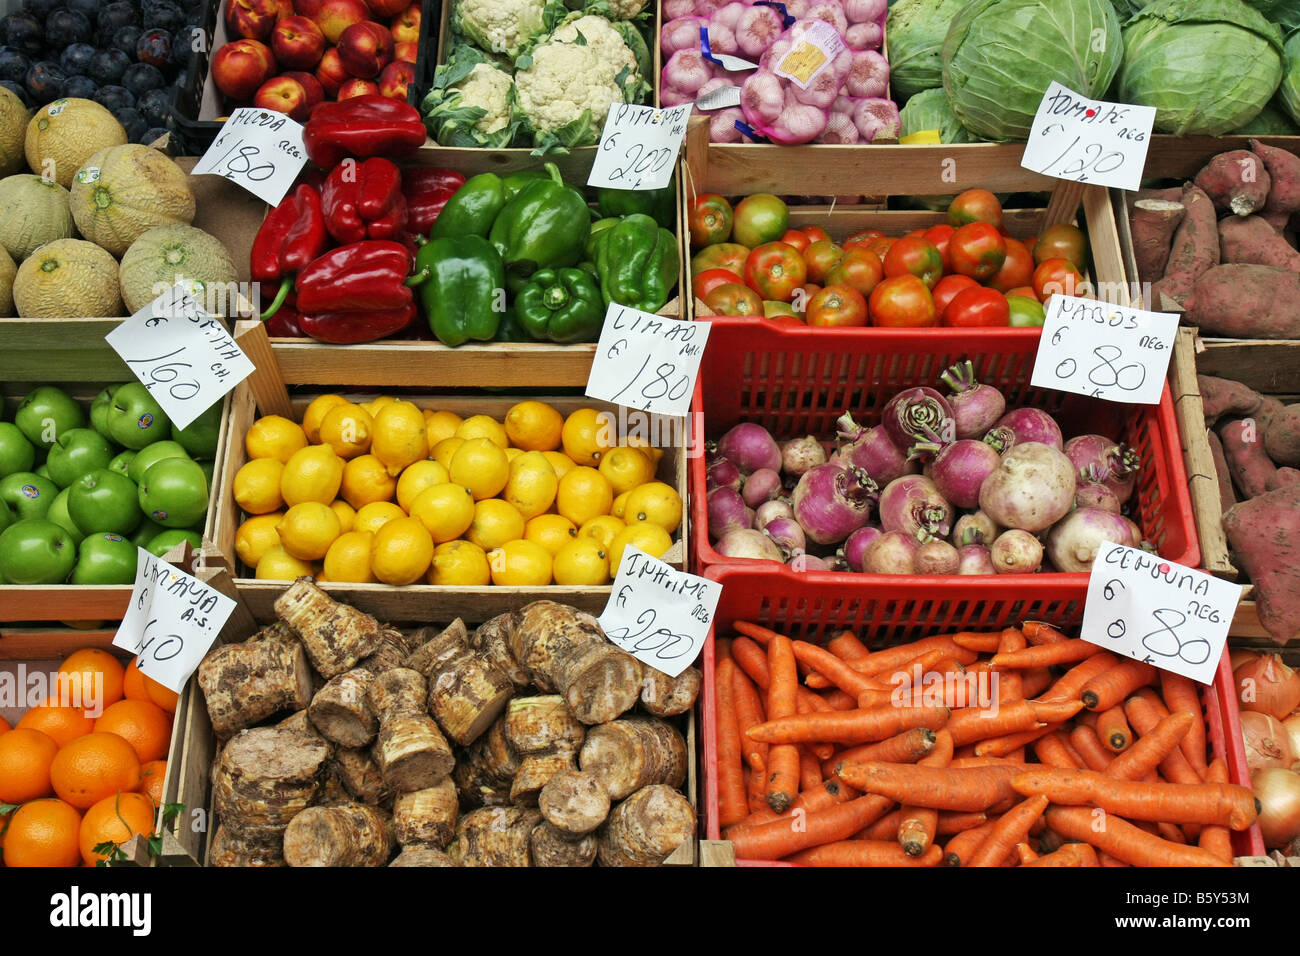 Fruits and vegetables at the market in Ponta Delgada, São Miguel, Azores, Portugal - Stock Image